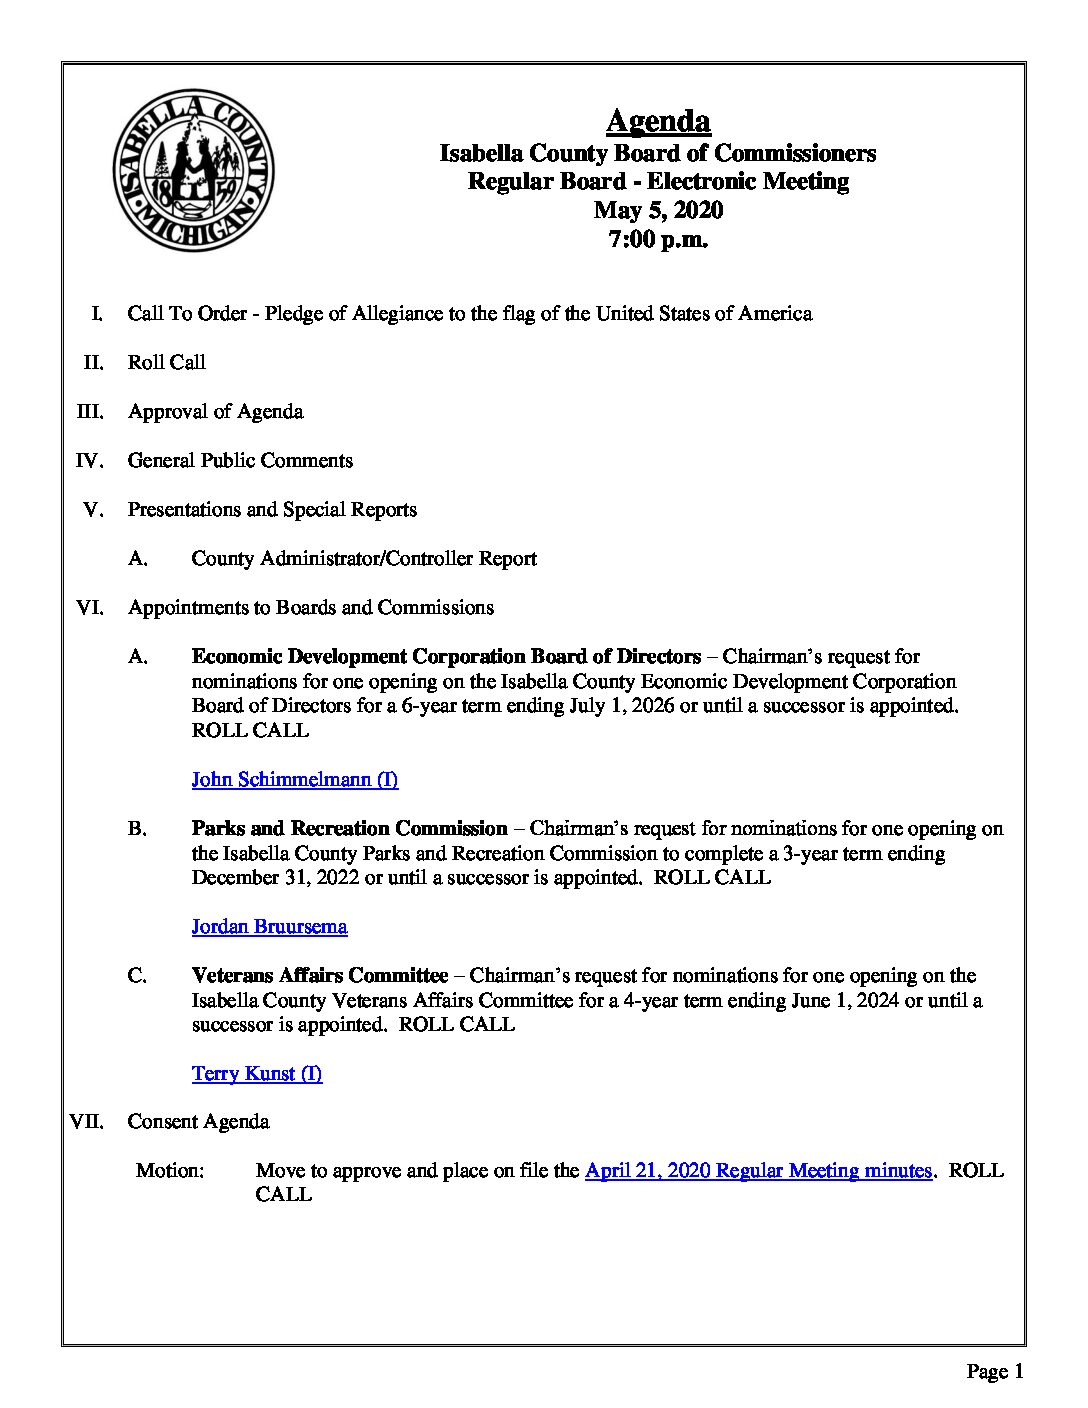 preview image of first page May 5, 2020 Agenda